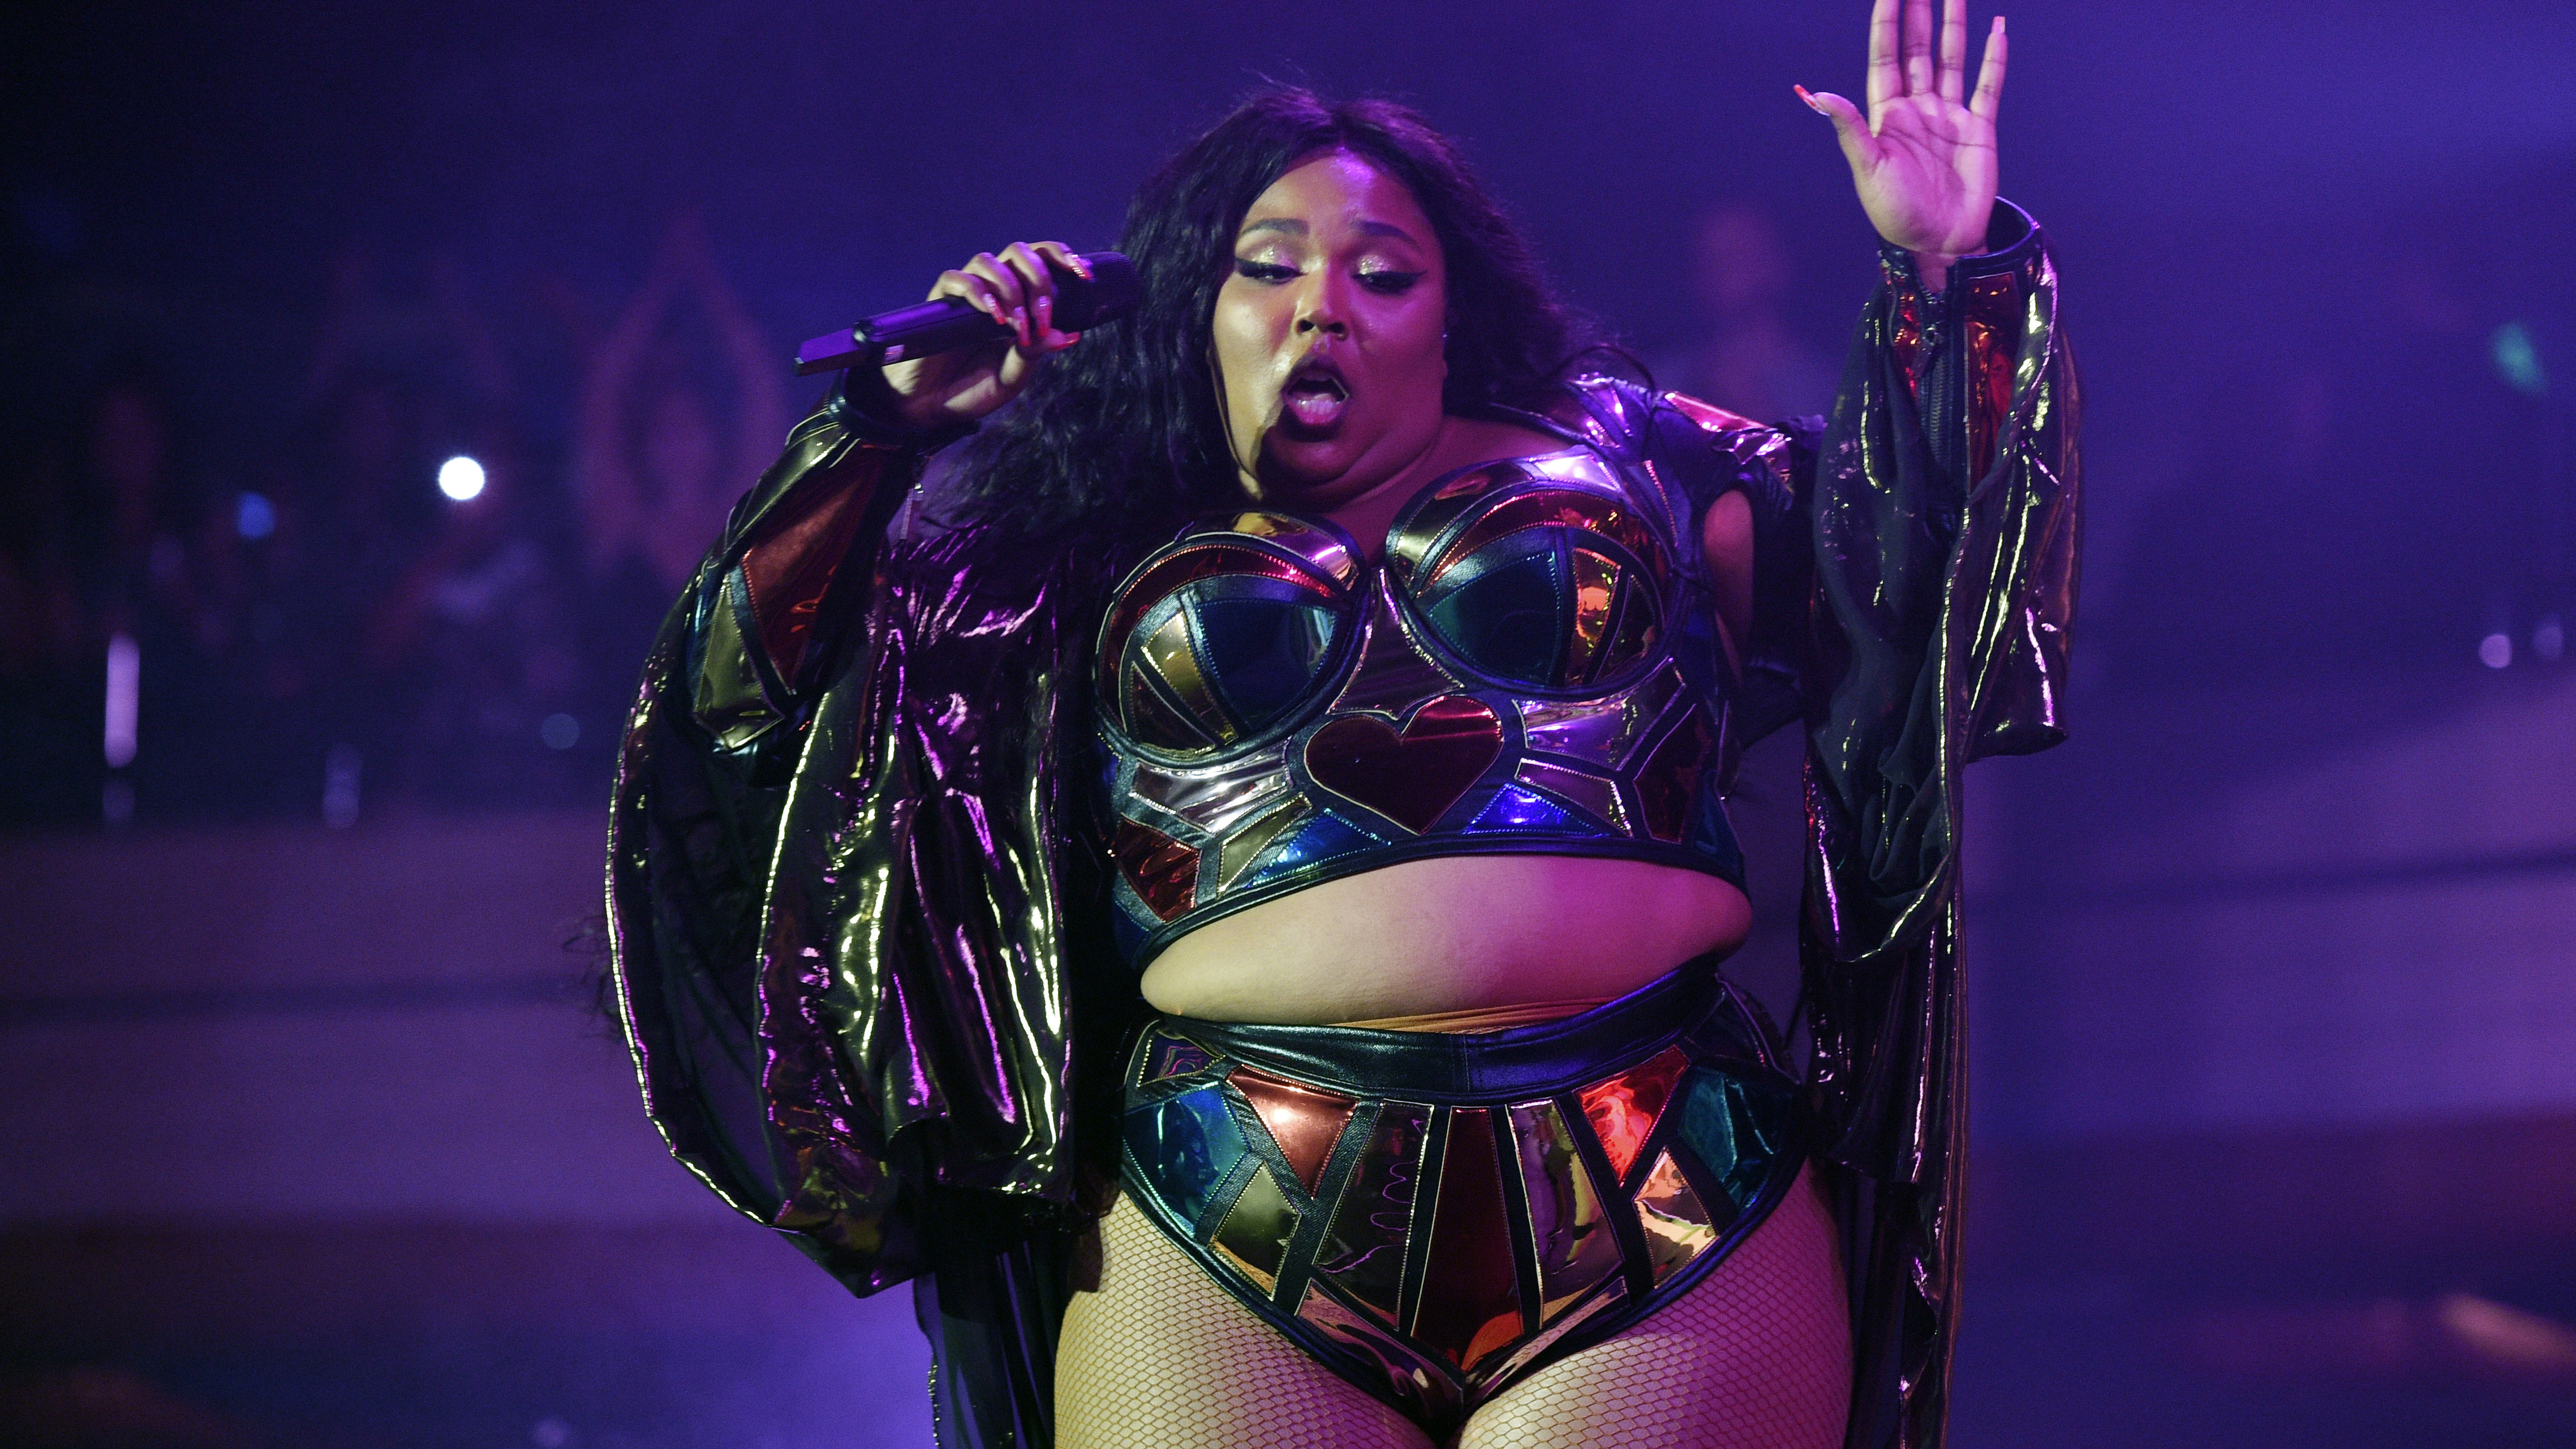 Westlake Legal Group lizzo Lizzo shares 'Truth Hurts' writing credit, slams plagiarism accusations fox-news/entertainment/music fnc/entertainment fnc Associated Press article addfa1d2-3987-5e99-bf2b-9a57c5d6f401